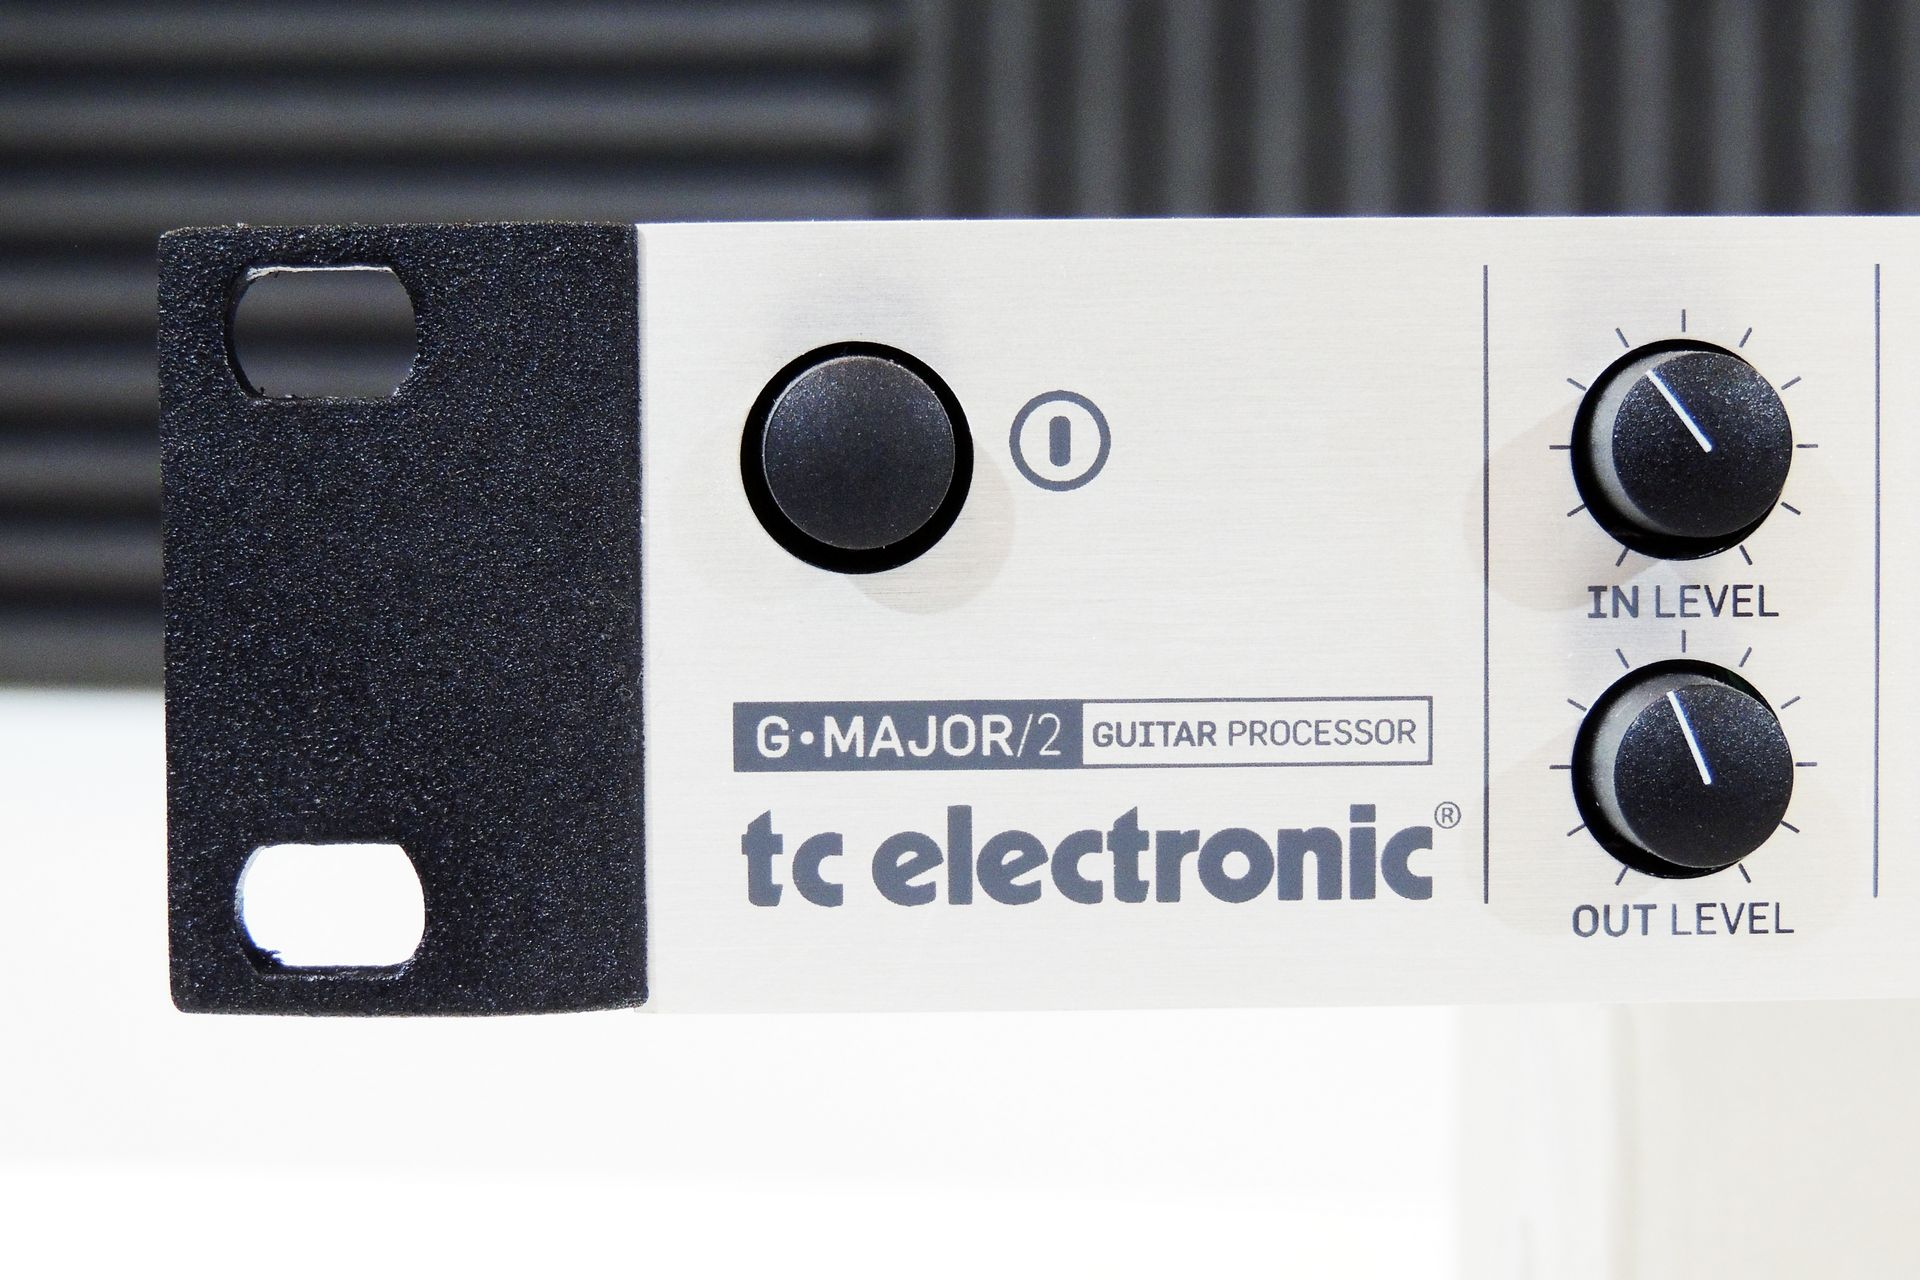 TC ELECTRONIC G-MAJOR MK II